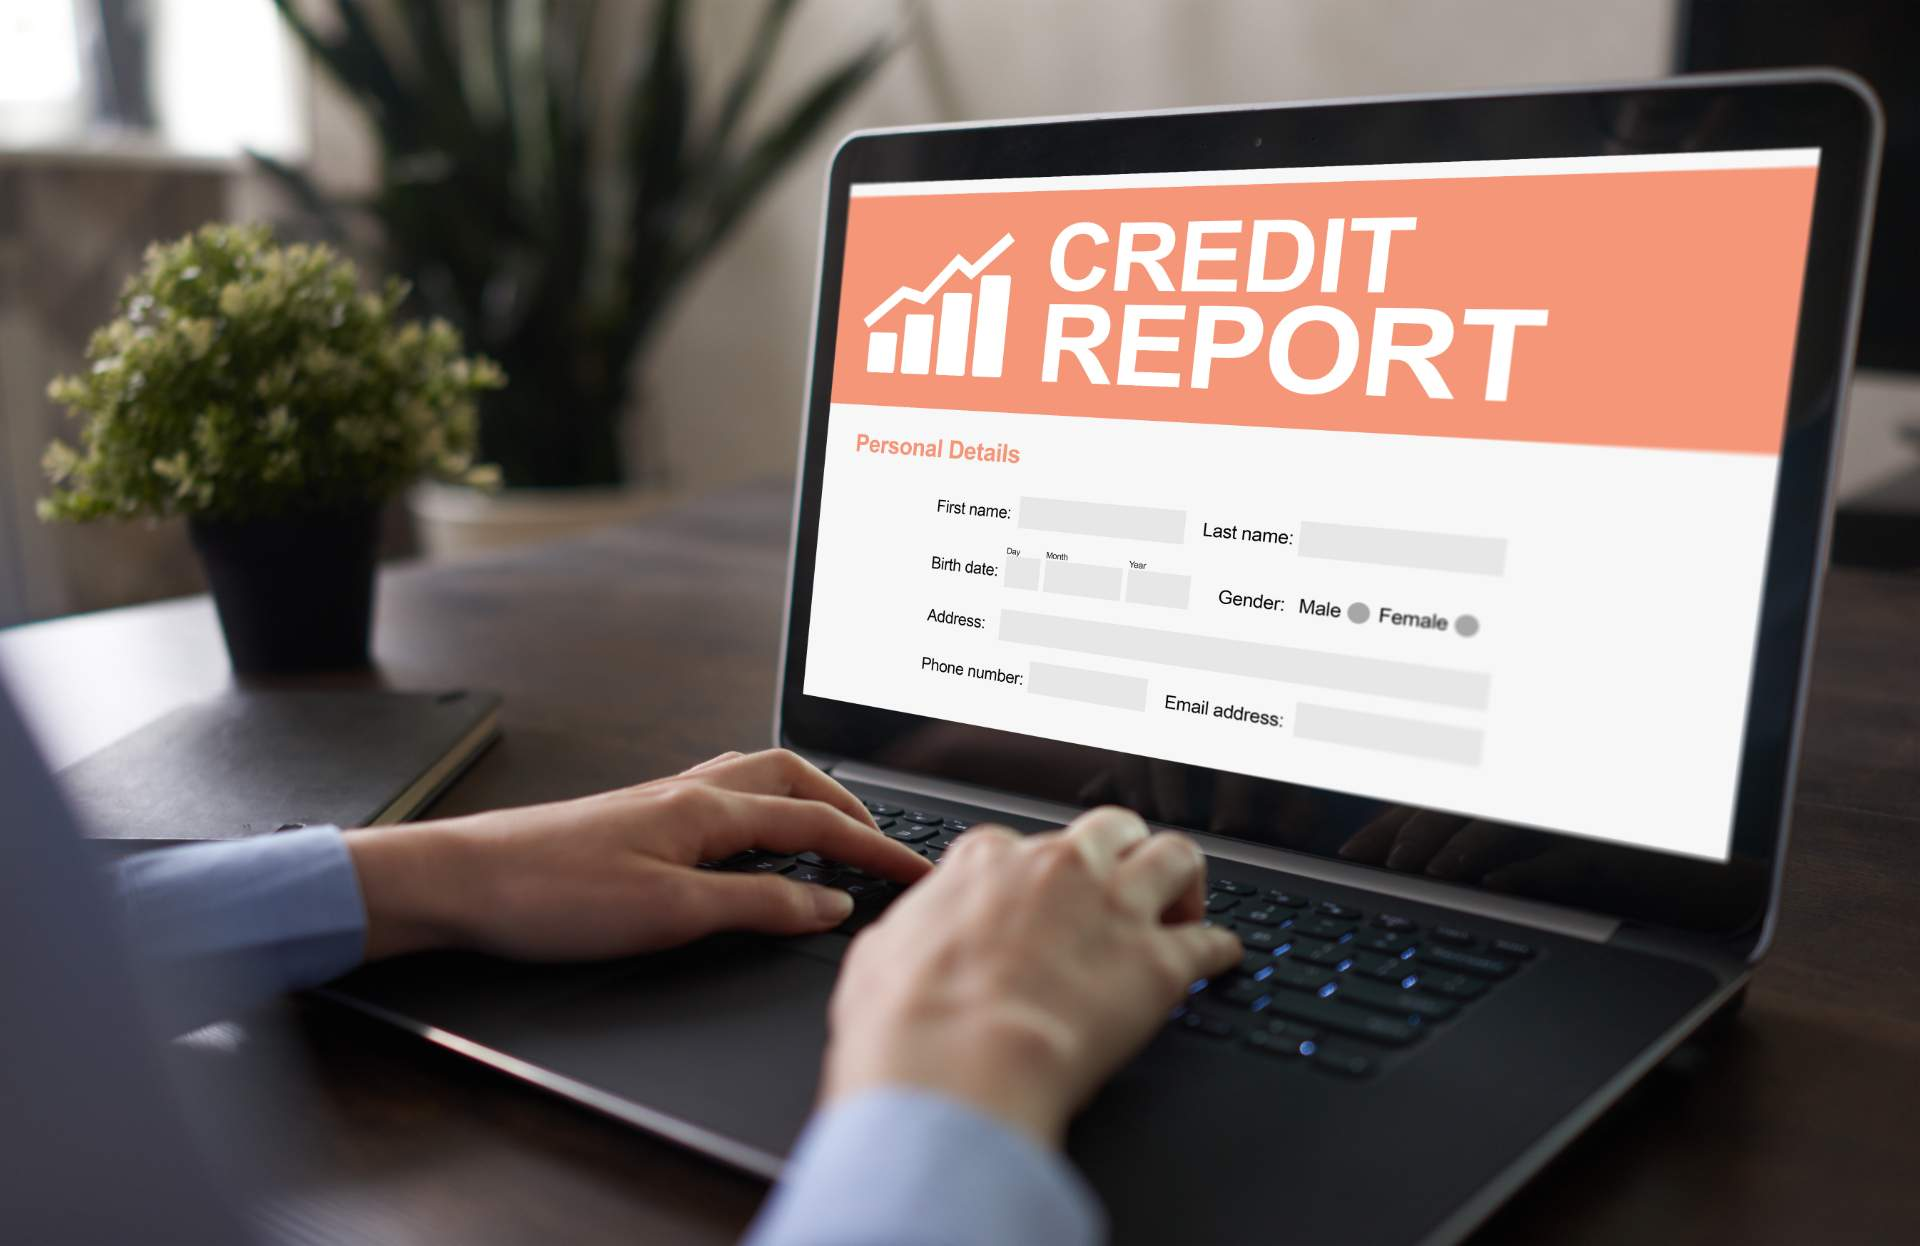 Credit report screenshot on a laptop